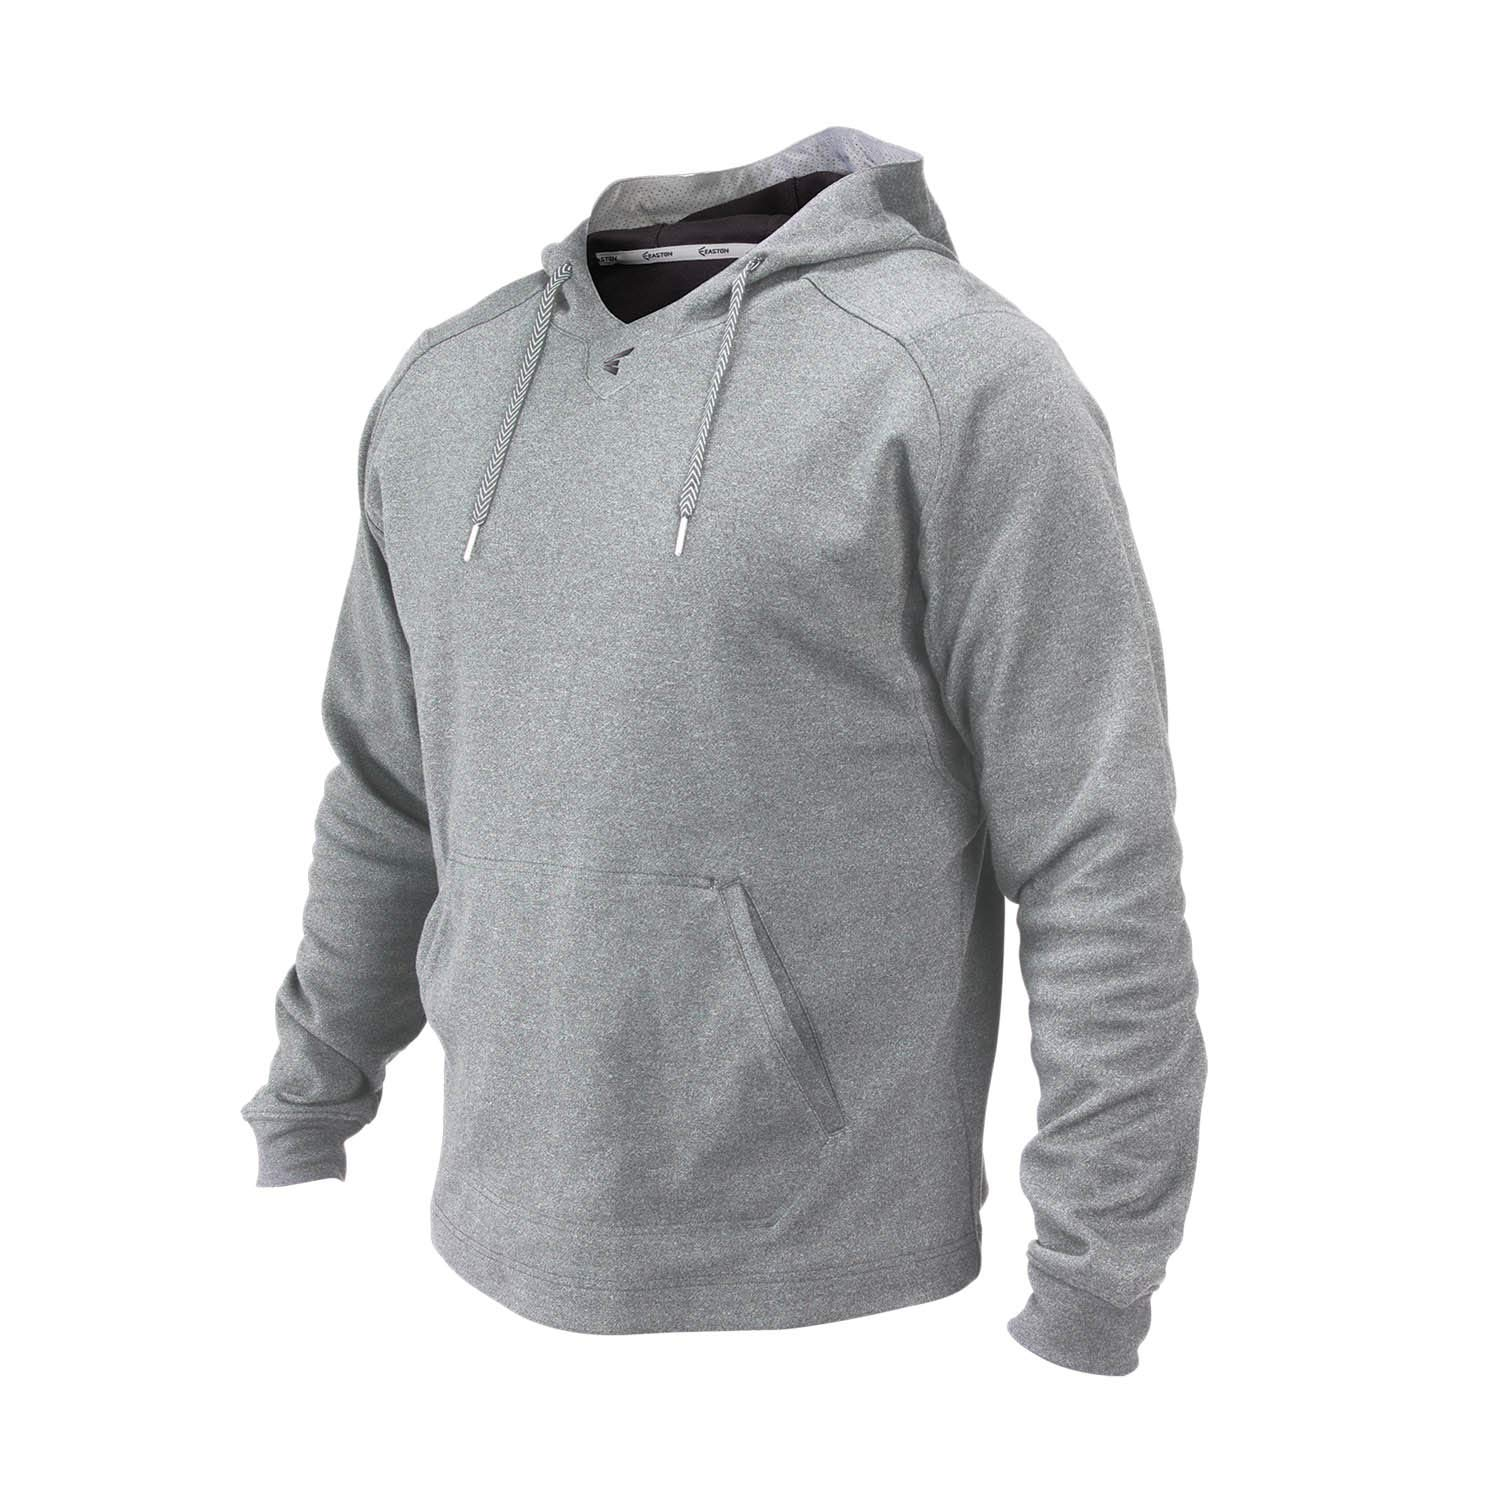 Soft Double Knit All Season Back For 100/% Team Decoration EASTON M10 Tech Fleece Hoodie Off Field Use Practice 2020 Blank Front Game Day Athletic Fit Design Perfect To Wear On Its Own